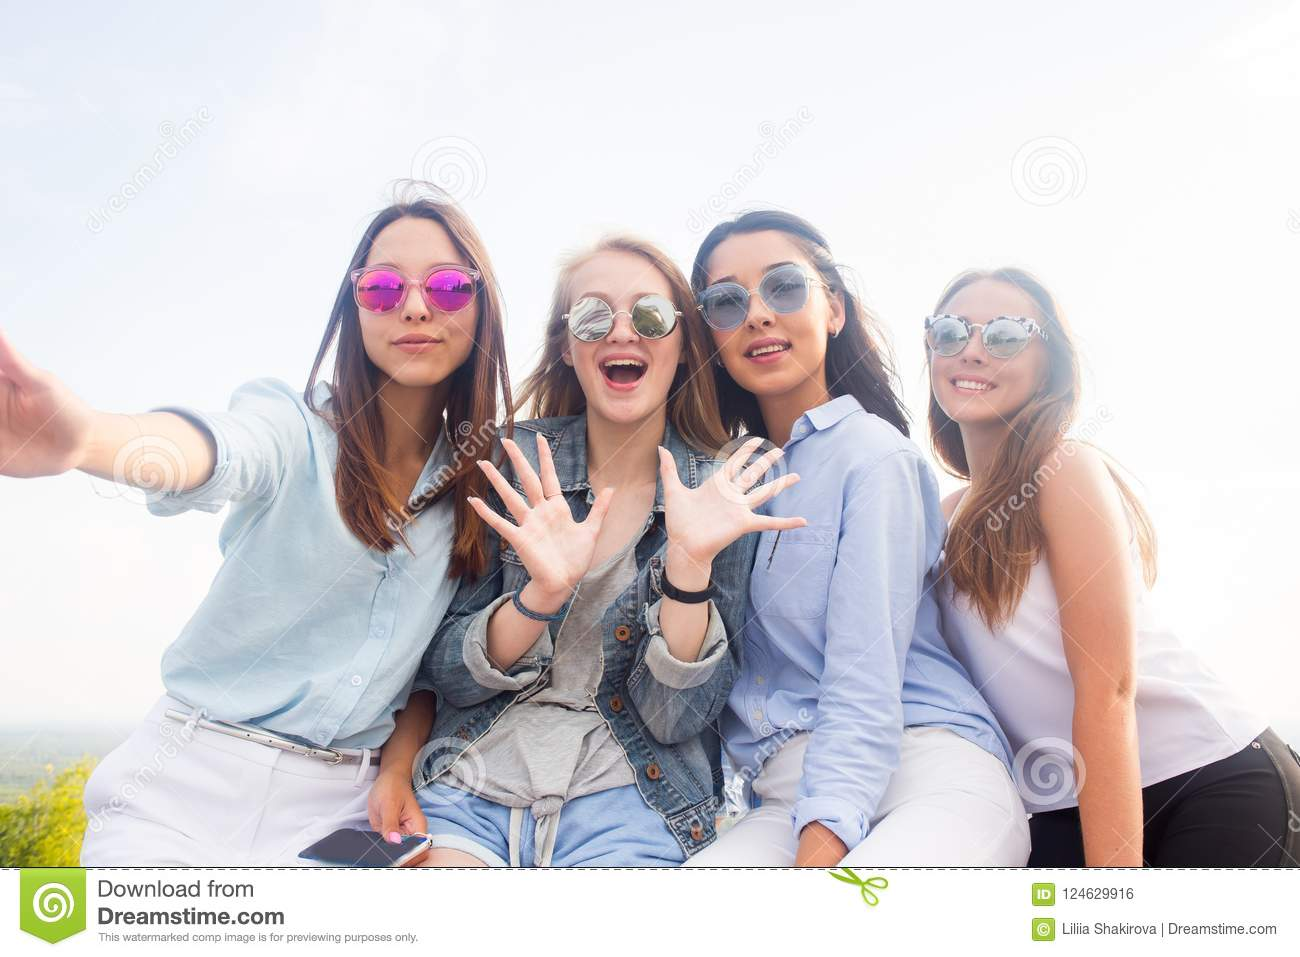 Best friends take selfies while walking in the Park. Four women wearing sunglasses are having a good day